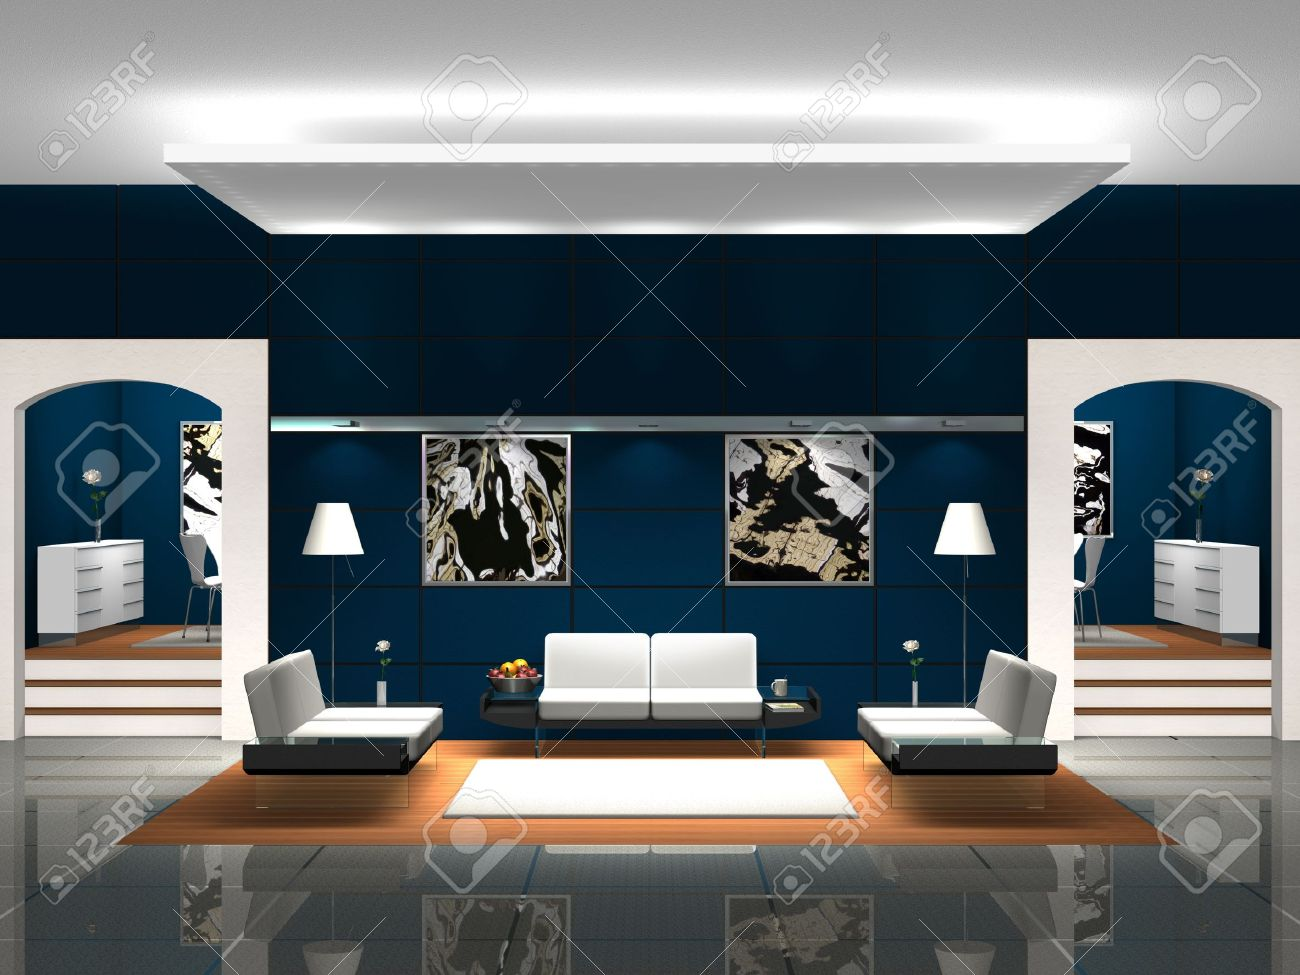 blue lobby stock photo, picture and royalty free image. image